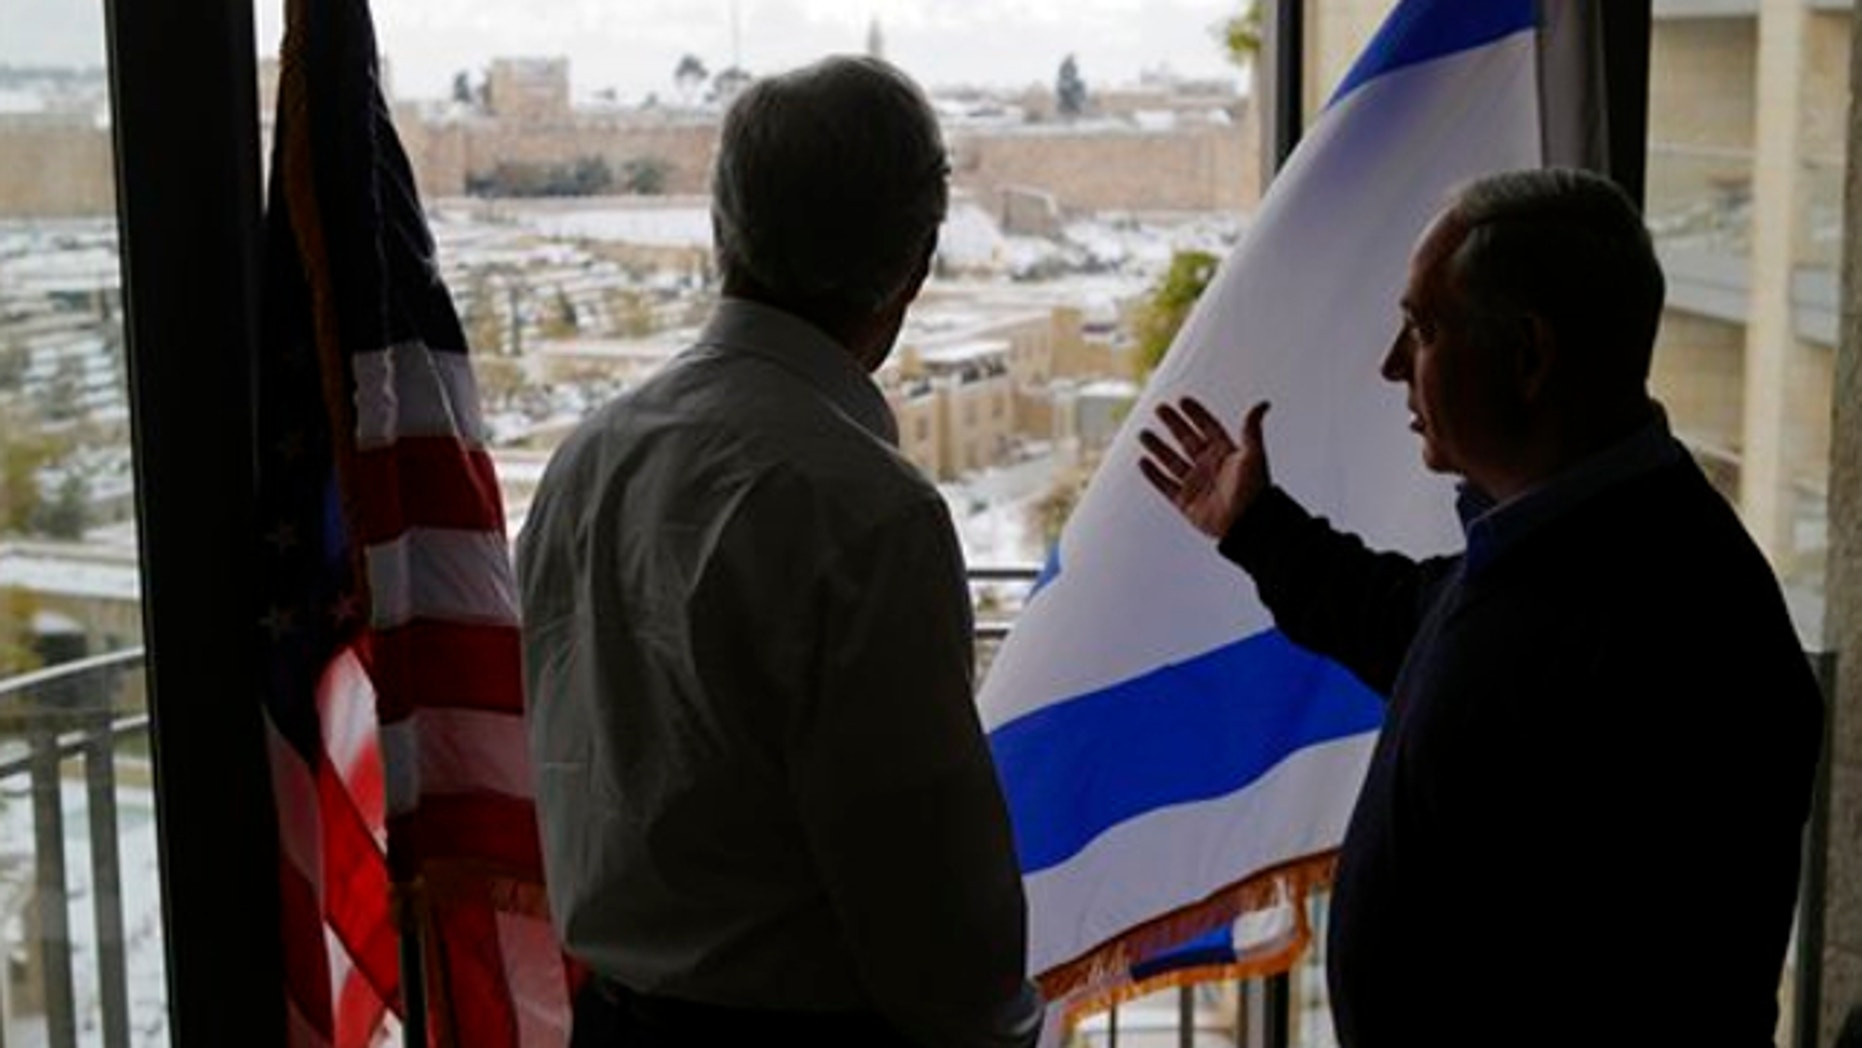 Dec. 12, 2013: Secretary of State John Kerry, left, and Israeli Prime Minister Benjamin Netanyahu look out onto the snow-covered city of Jersusalem during a meeting in Jerusalem.